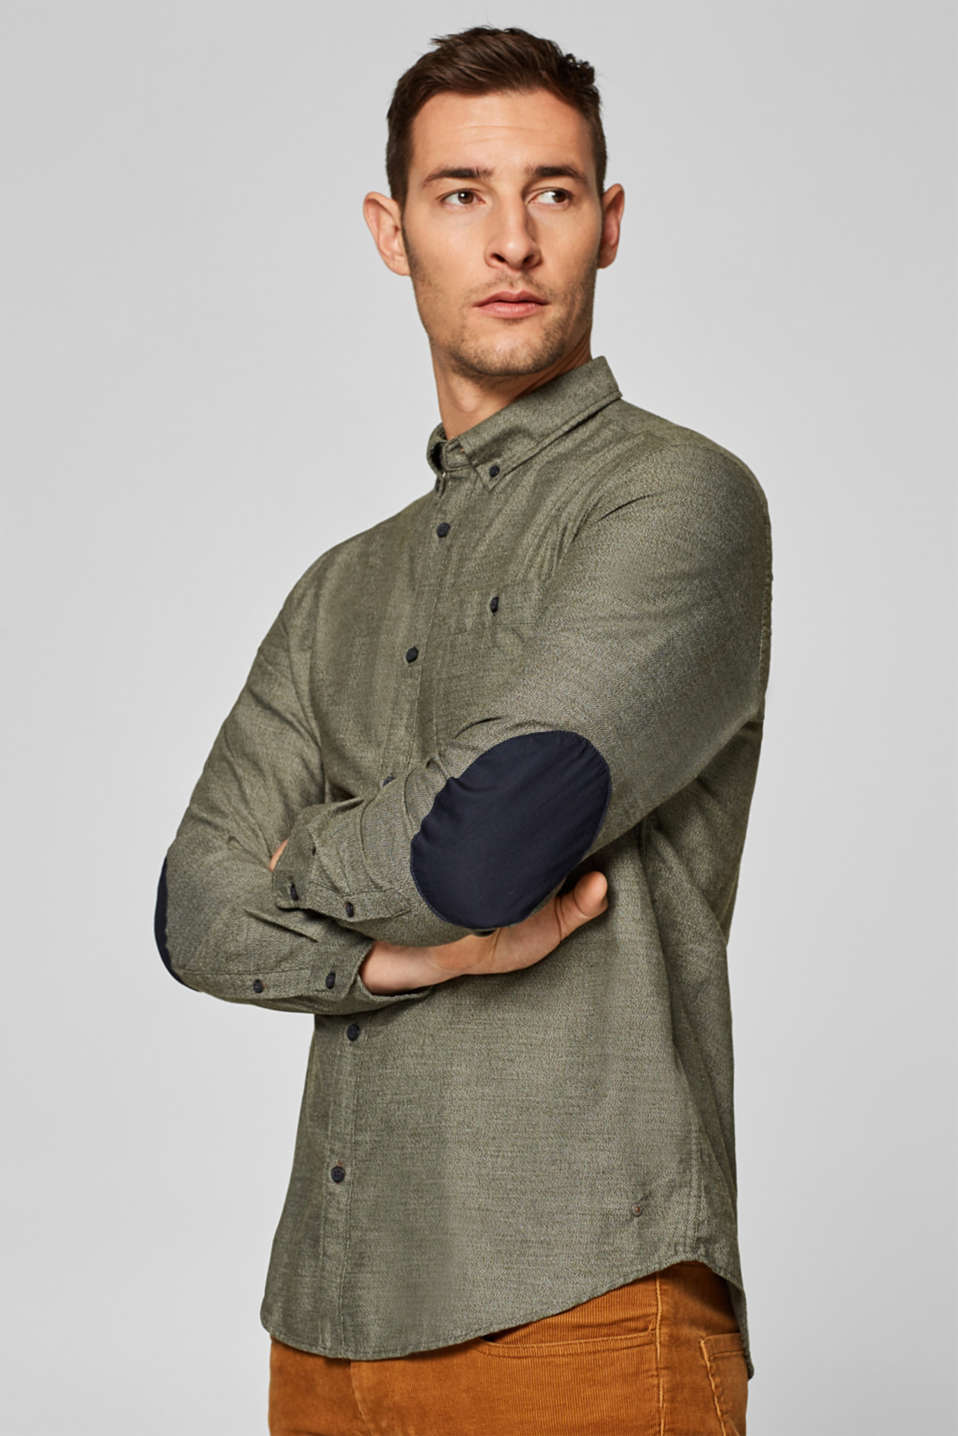 Esprit - Shirt made of woven textured fabric